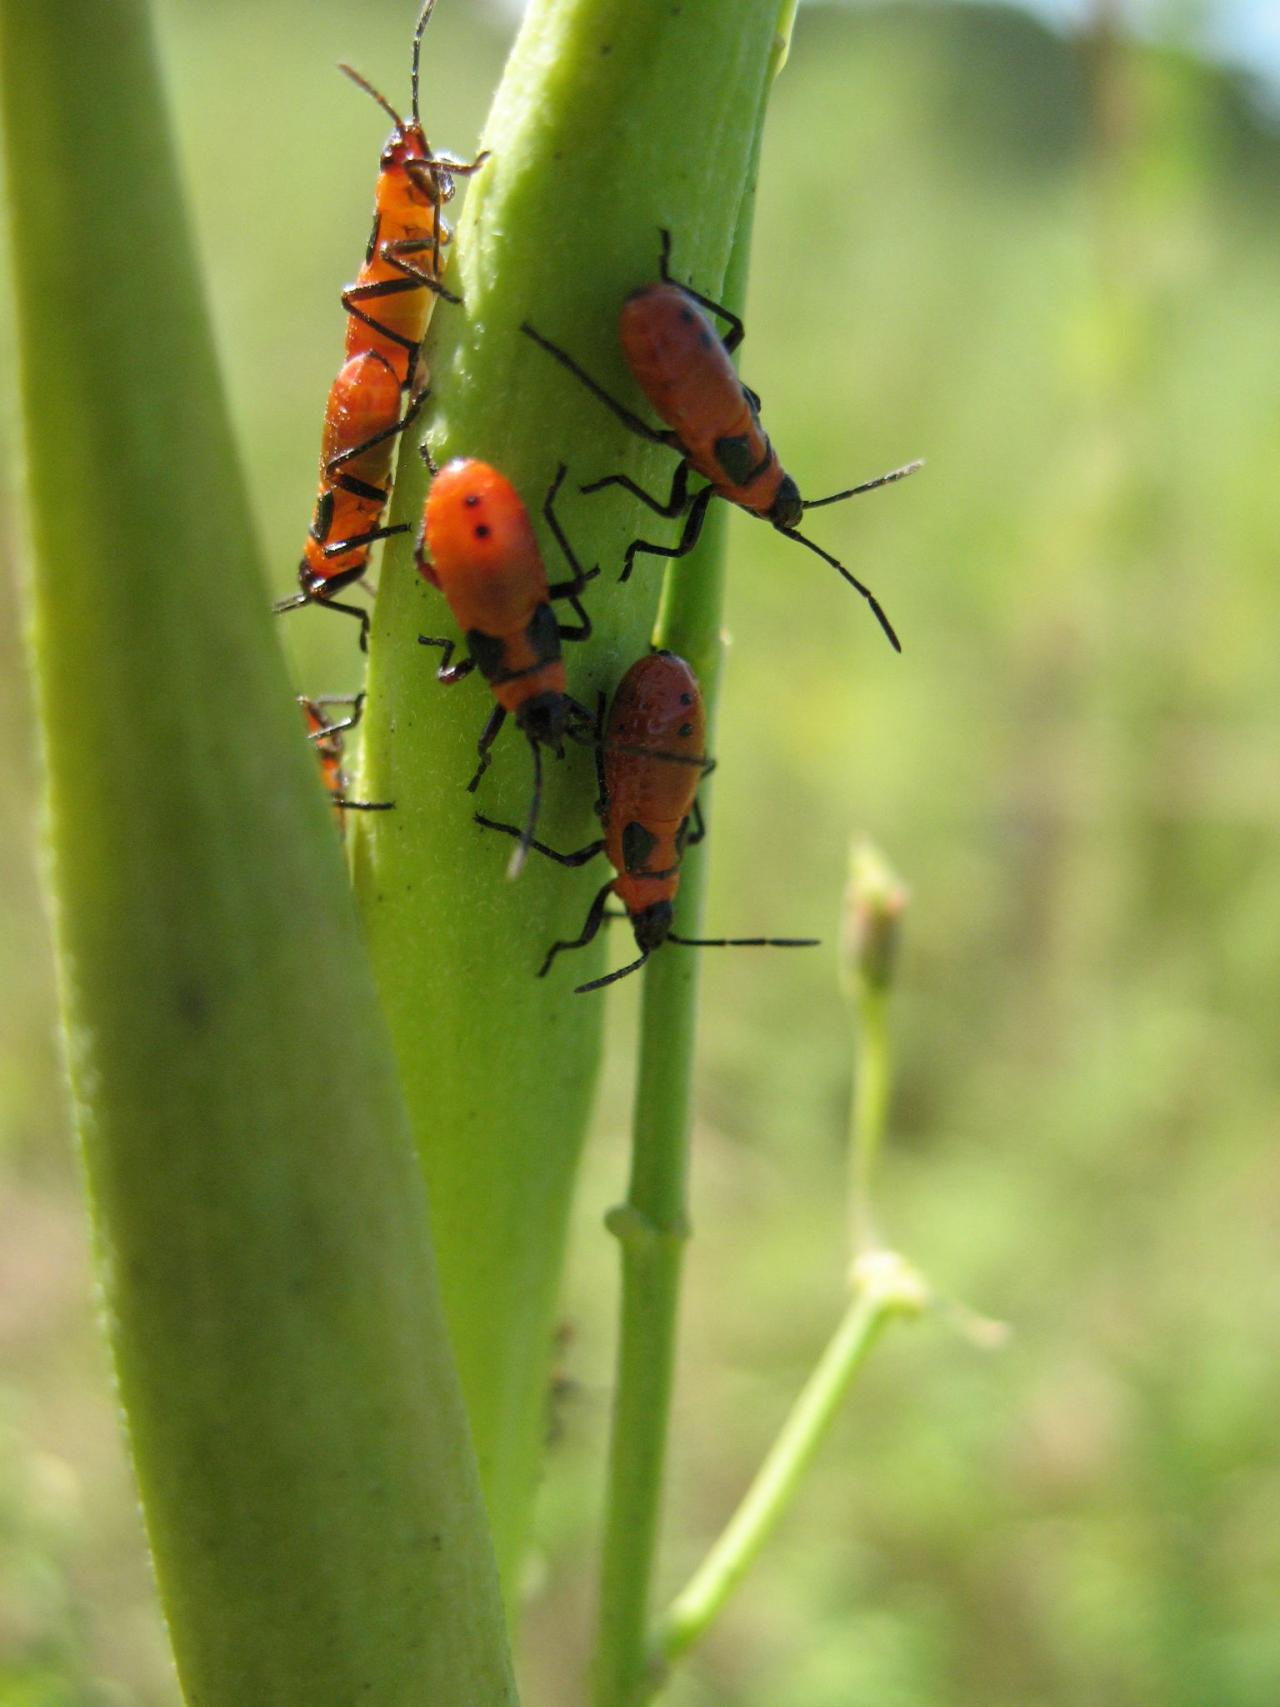 Milkweed bug nymphs with black wing buds, found on whorled milkweed in late August in Dakota County. Once mature, this generation will fly south as food supplies dwindle.